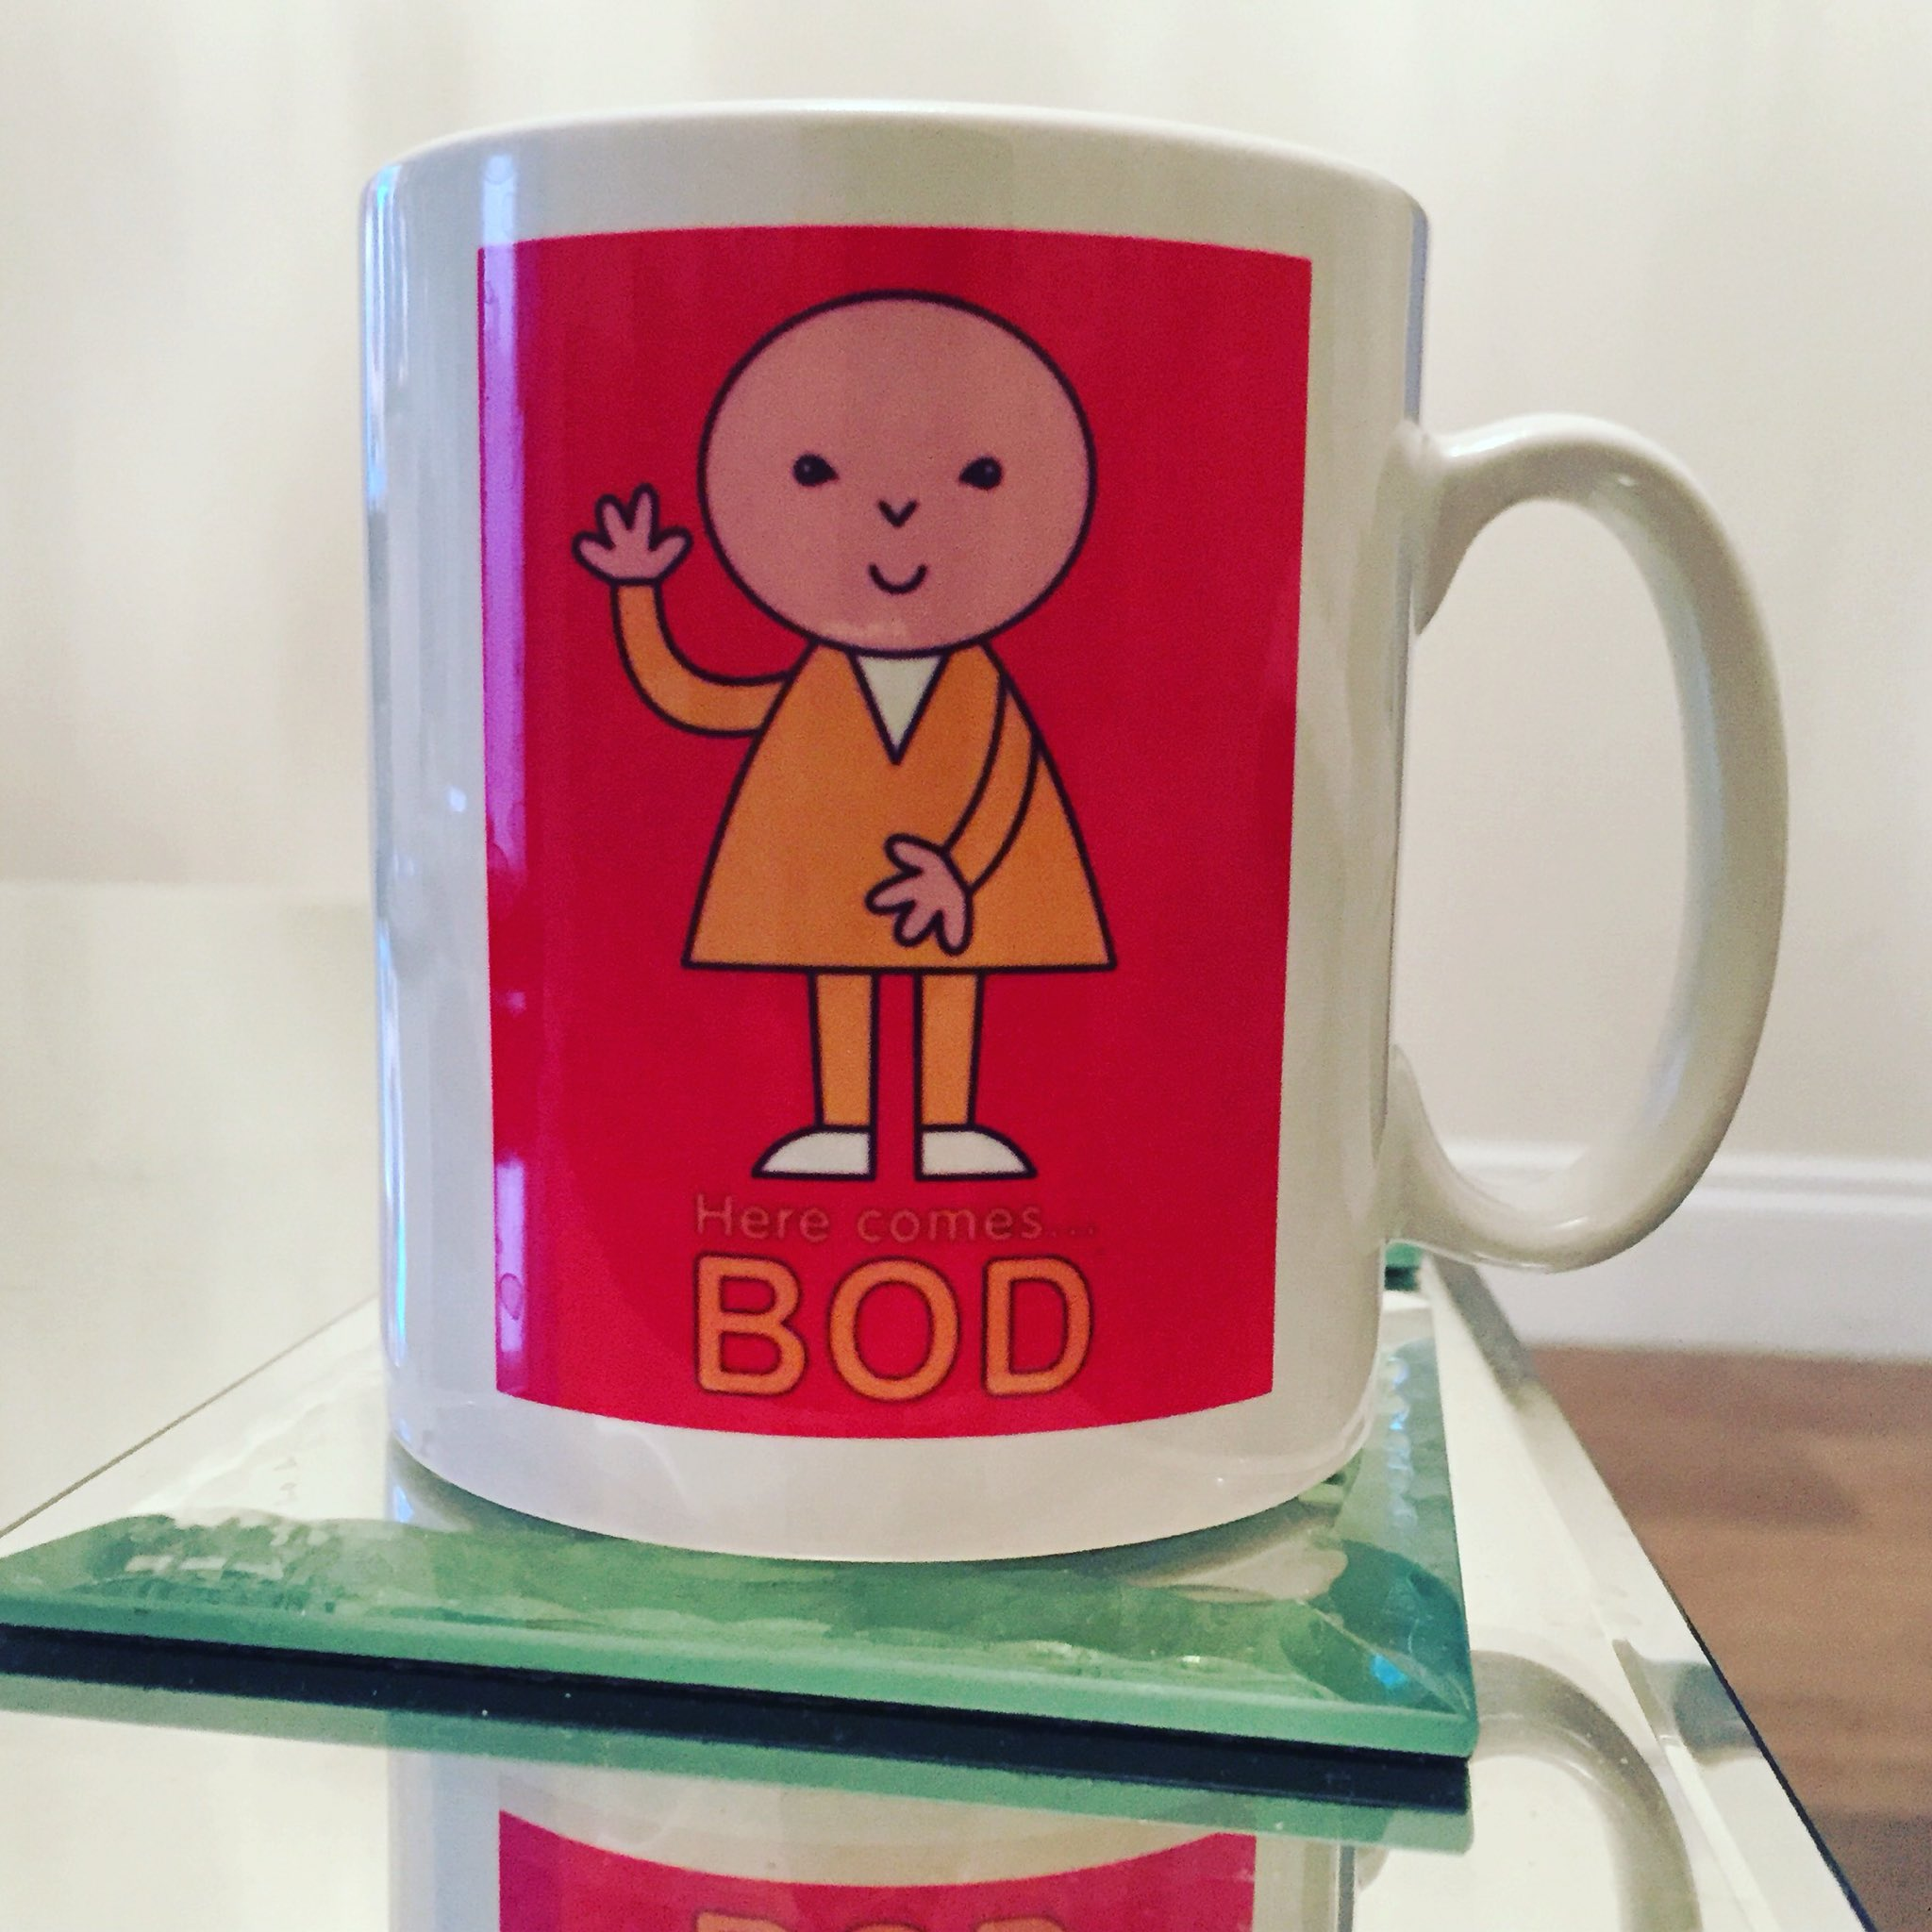 Having a cuppa in my old school mug. Who remembers Bod ?.. https://t.co/WQLH5q3CML